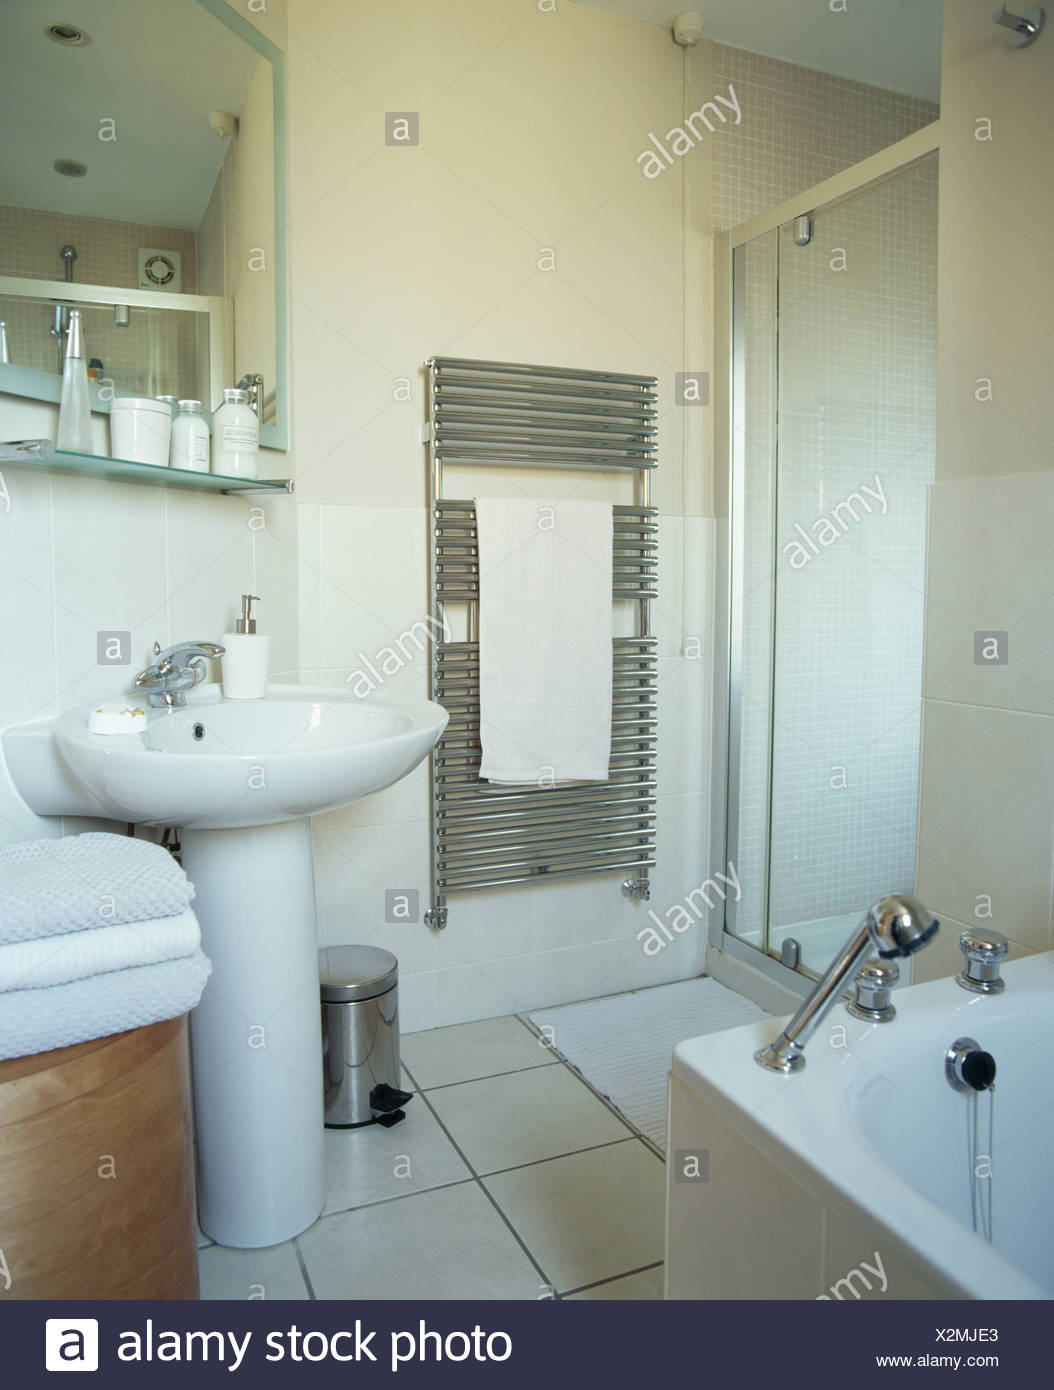 Wall-mounted chrome radiator beside glass shower cabinet and white ...